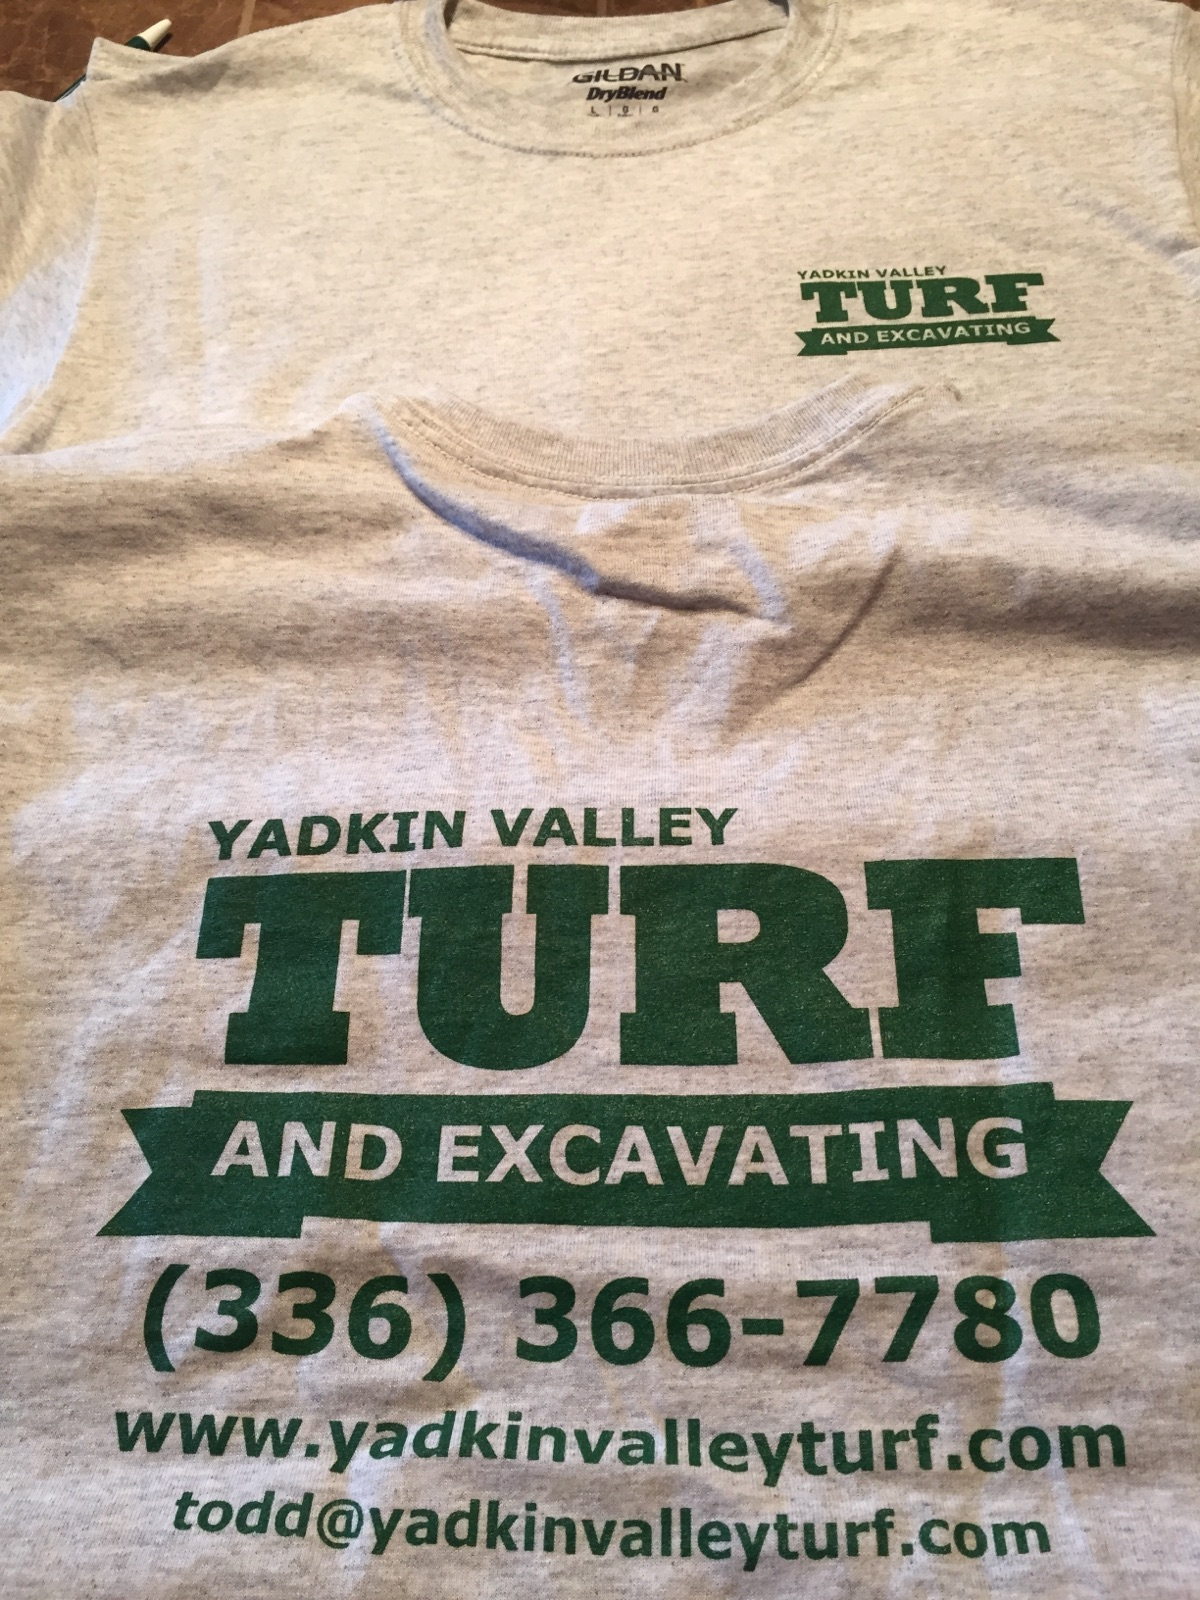 Yadkin Valley Turf